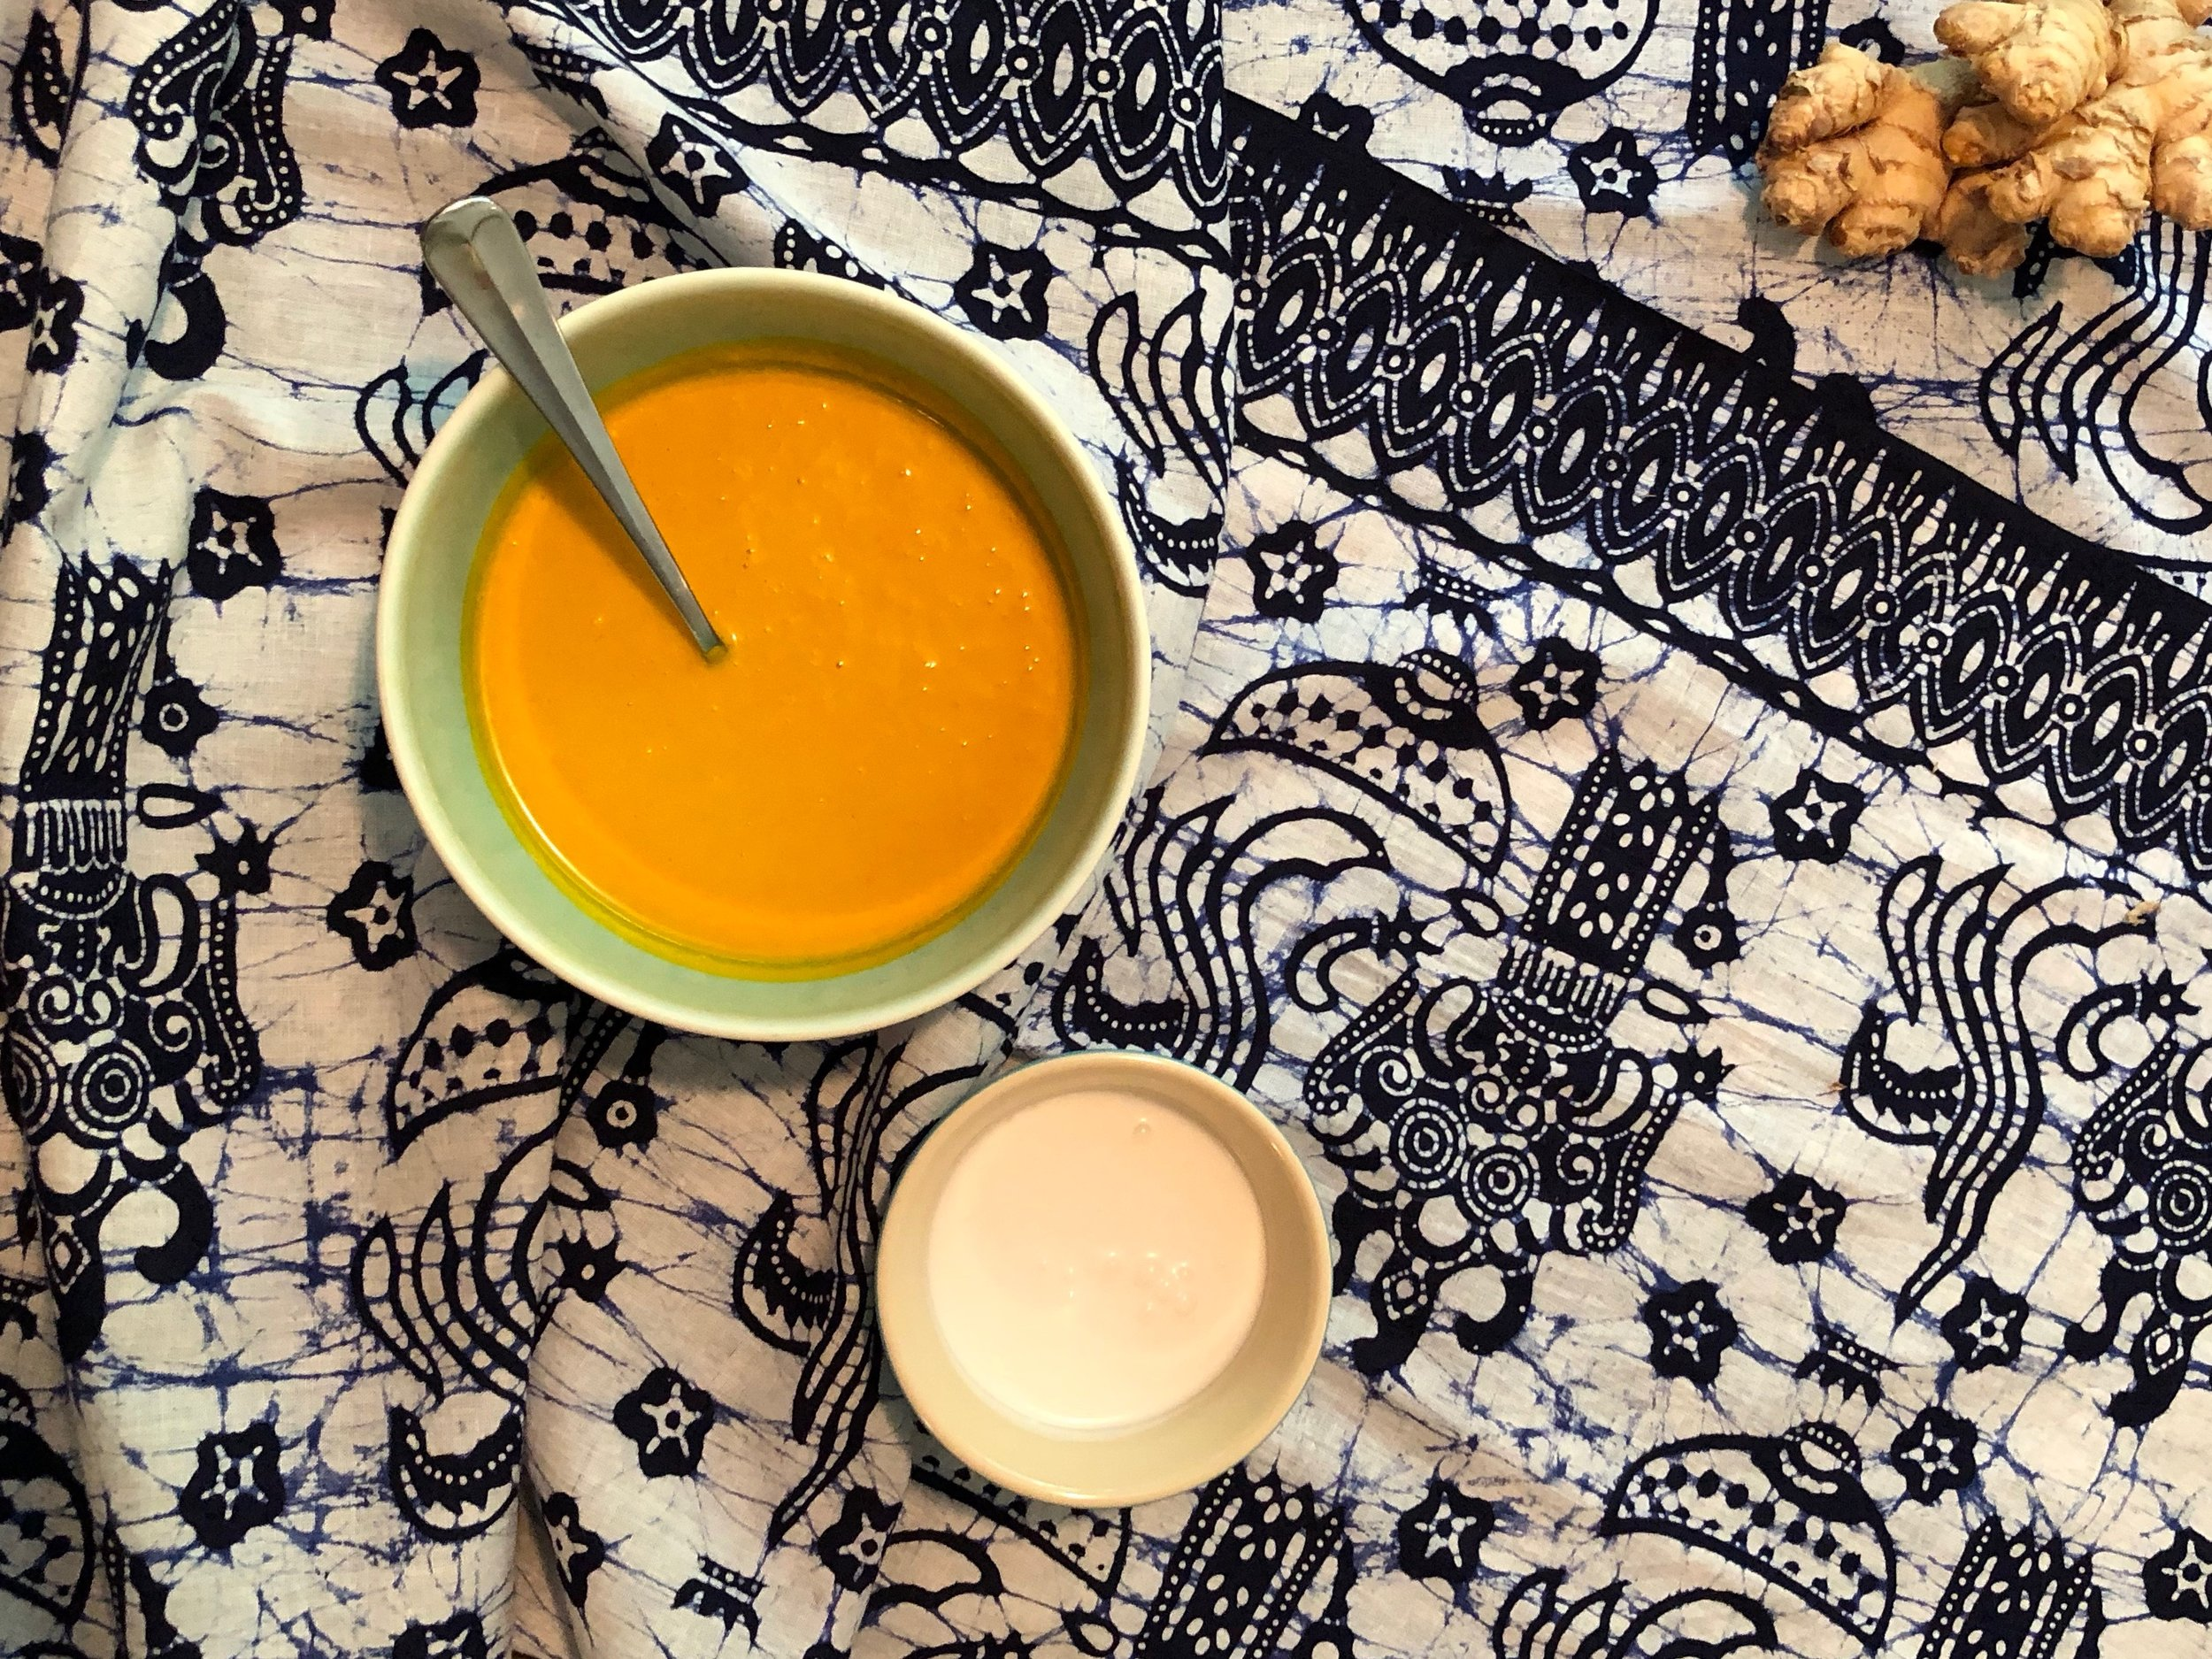 Can't stand the heat? Whip up a batch of this refreshing cold soup we first had in Bali